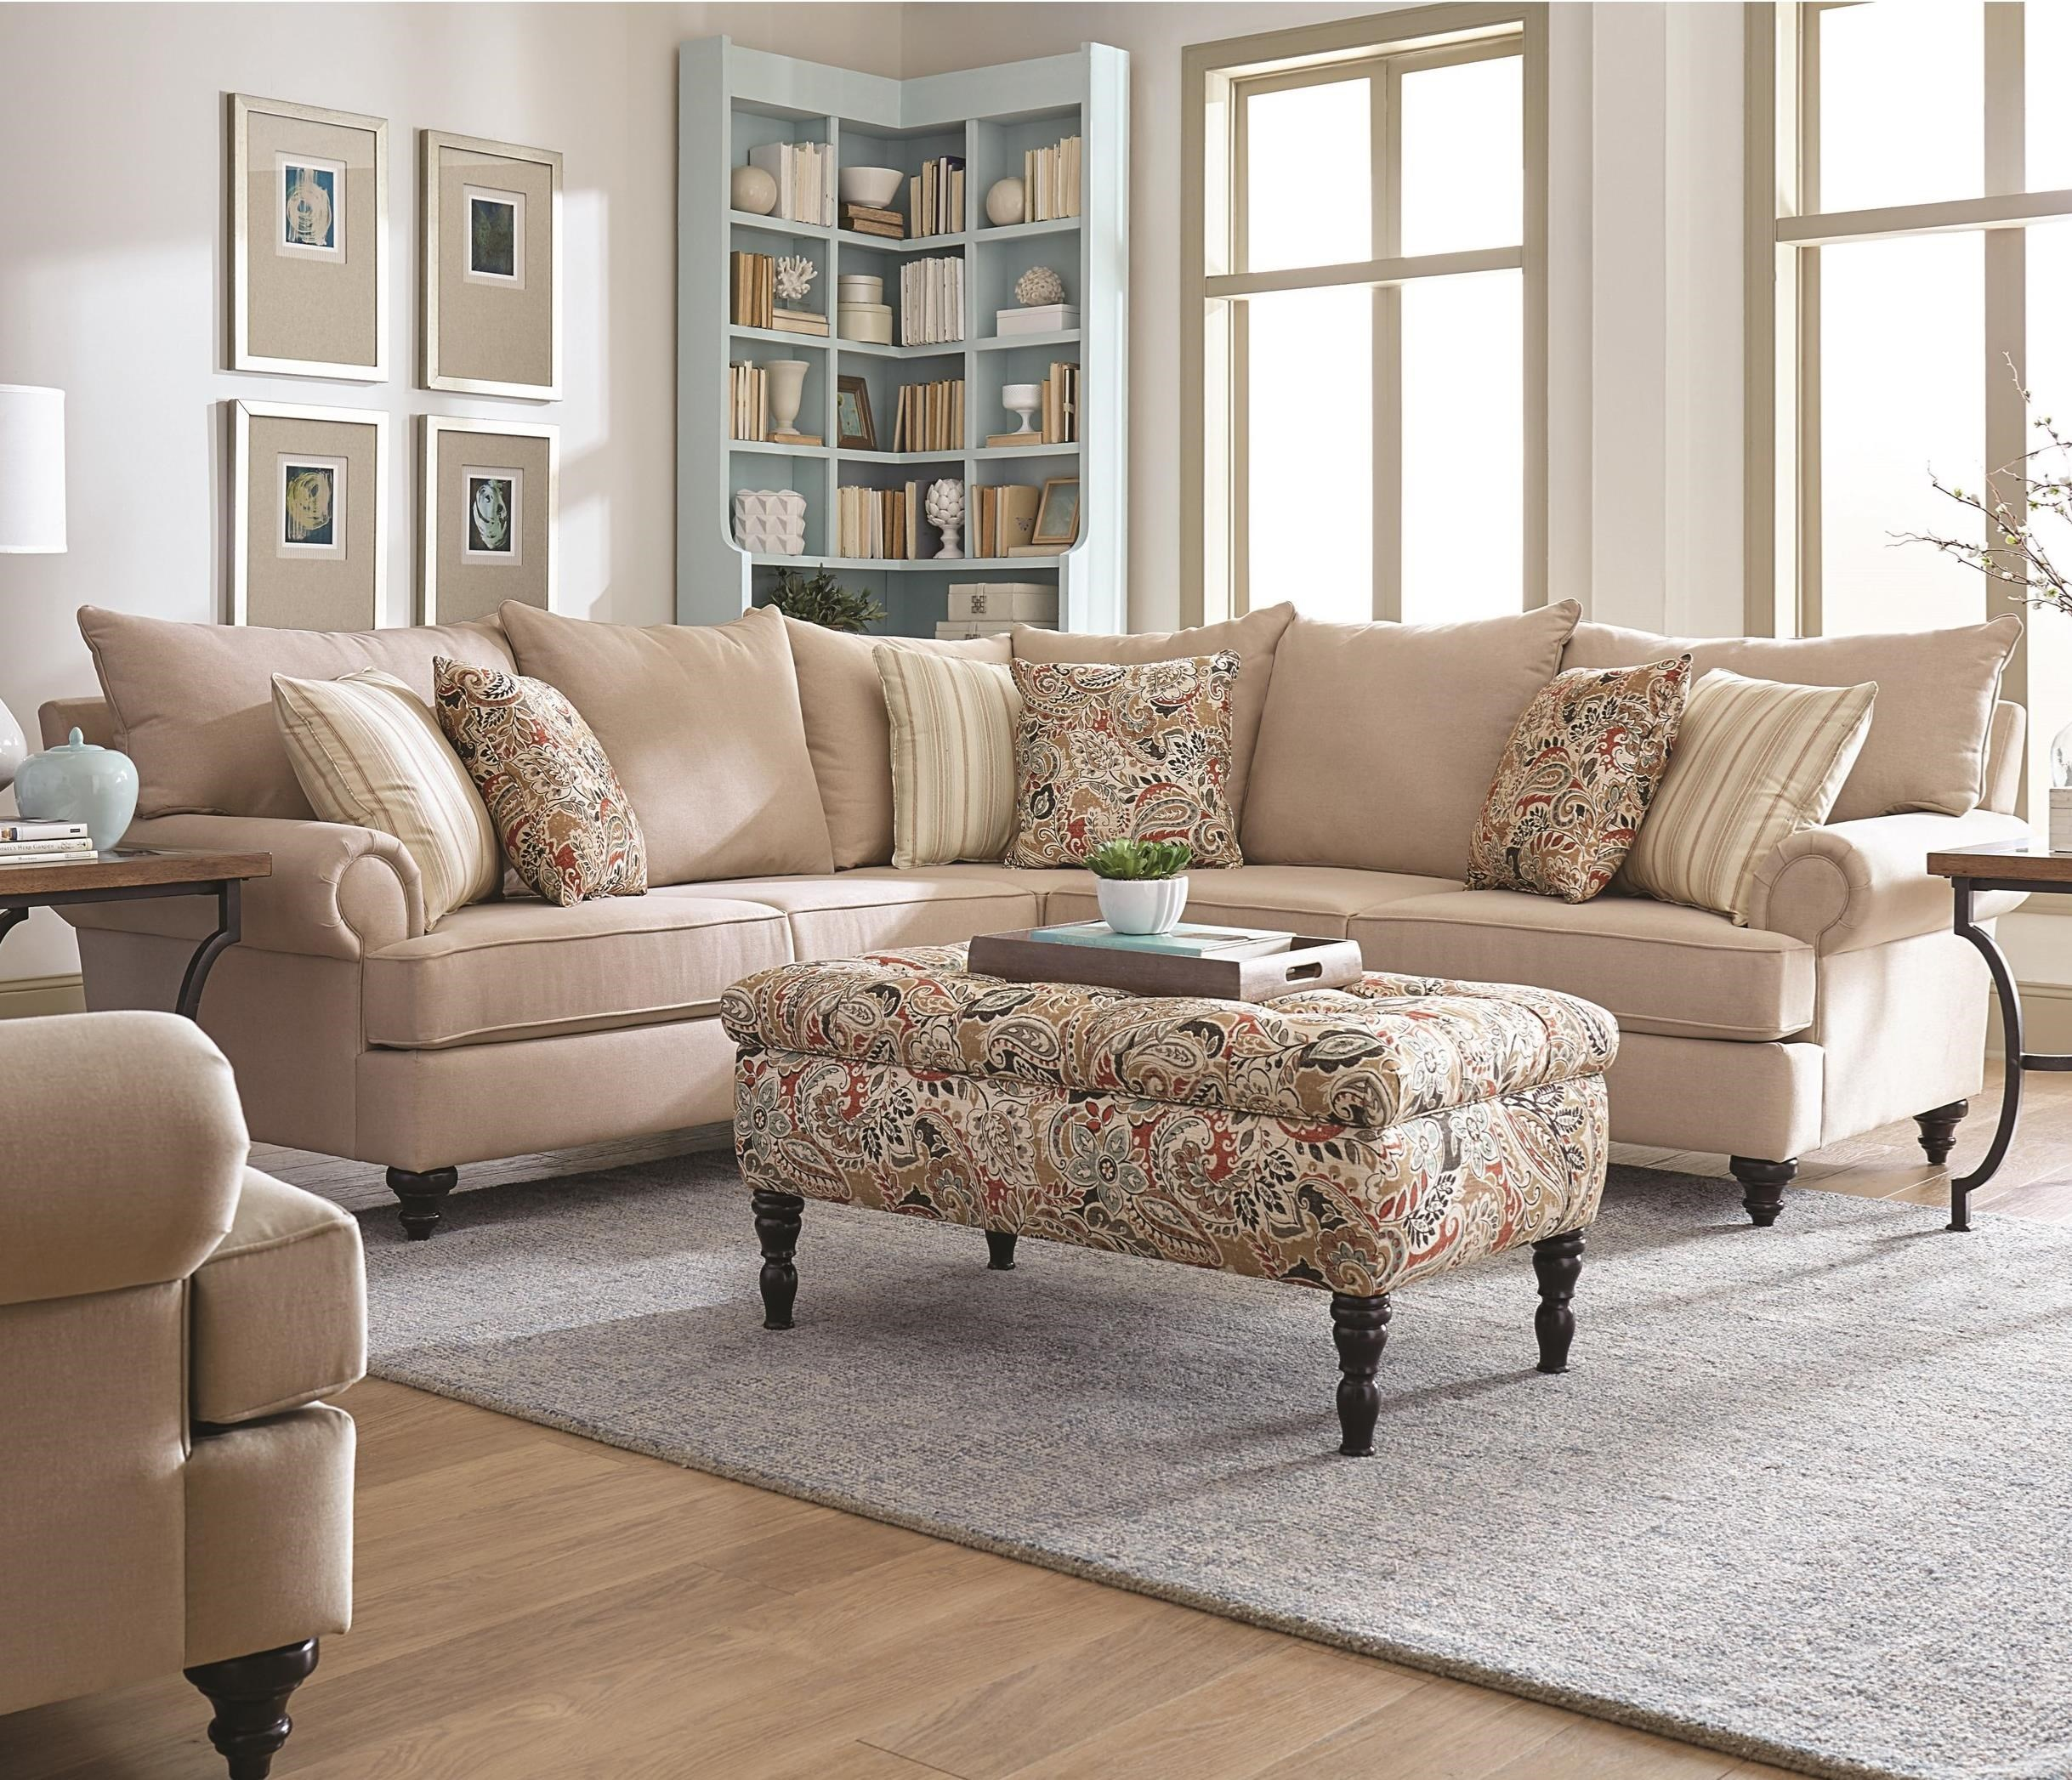 Ottoman Available Separately : england sectionals - Sectionals, Sofas & Couches